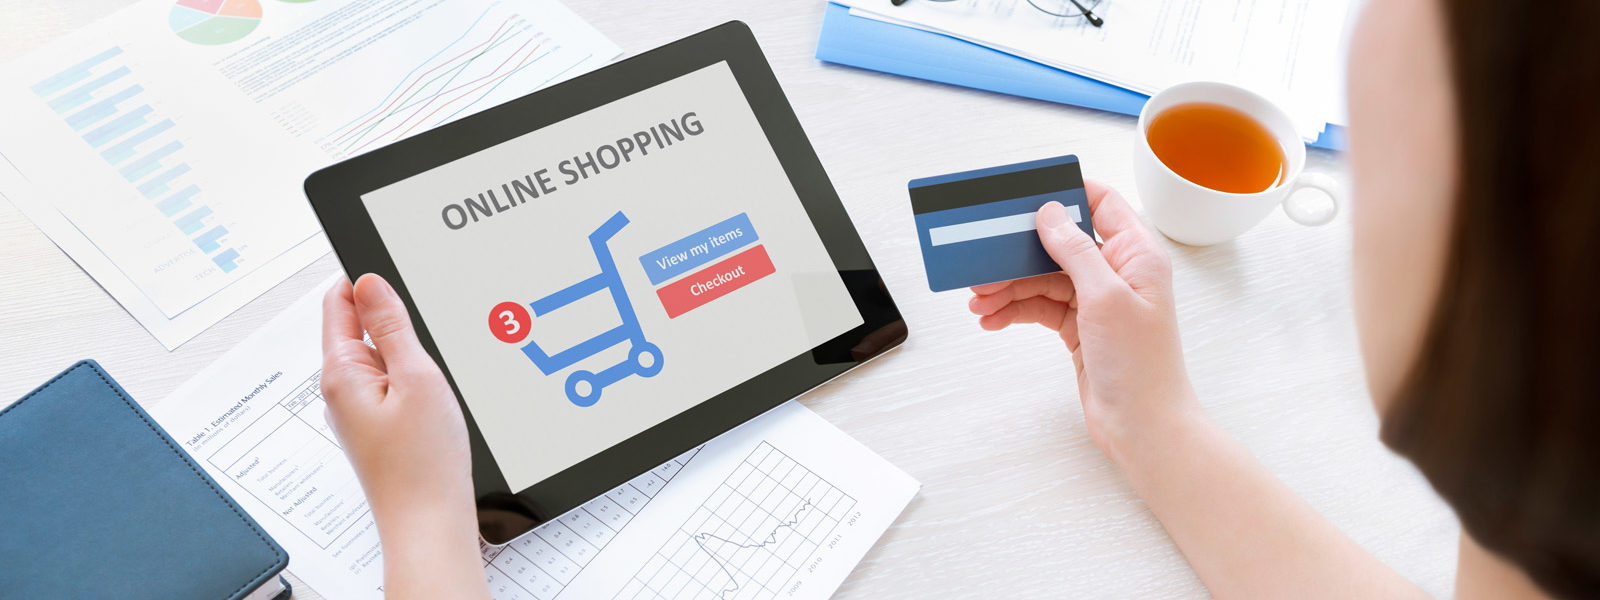 Learn How to be a Savvy Online Shopper